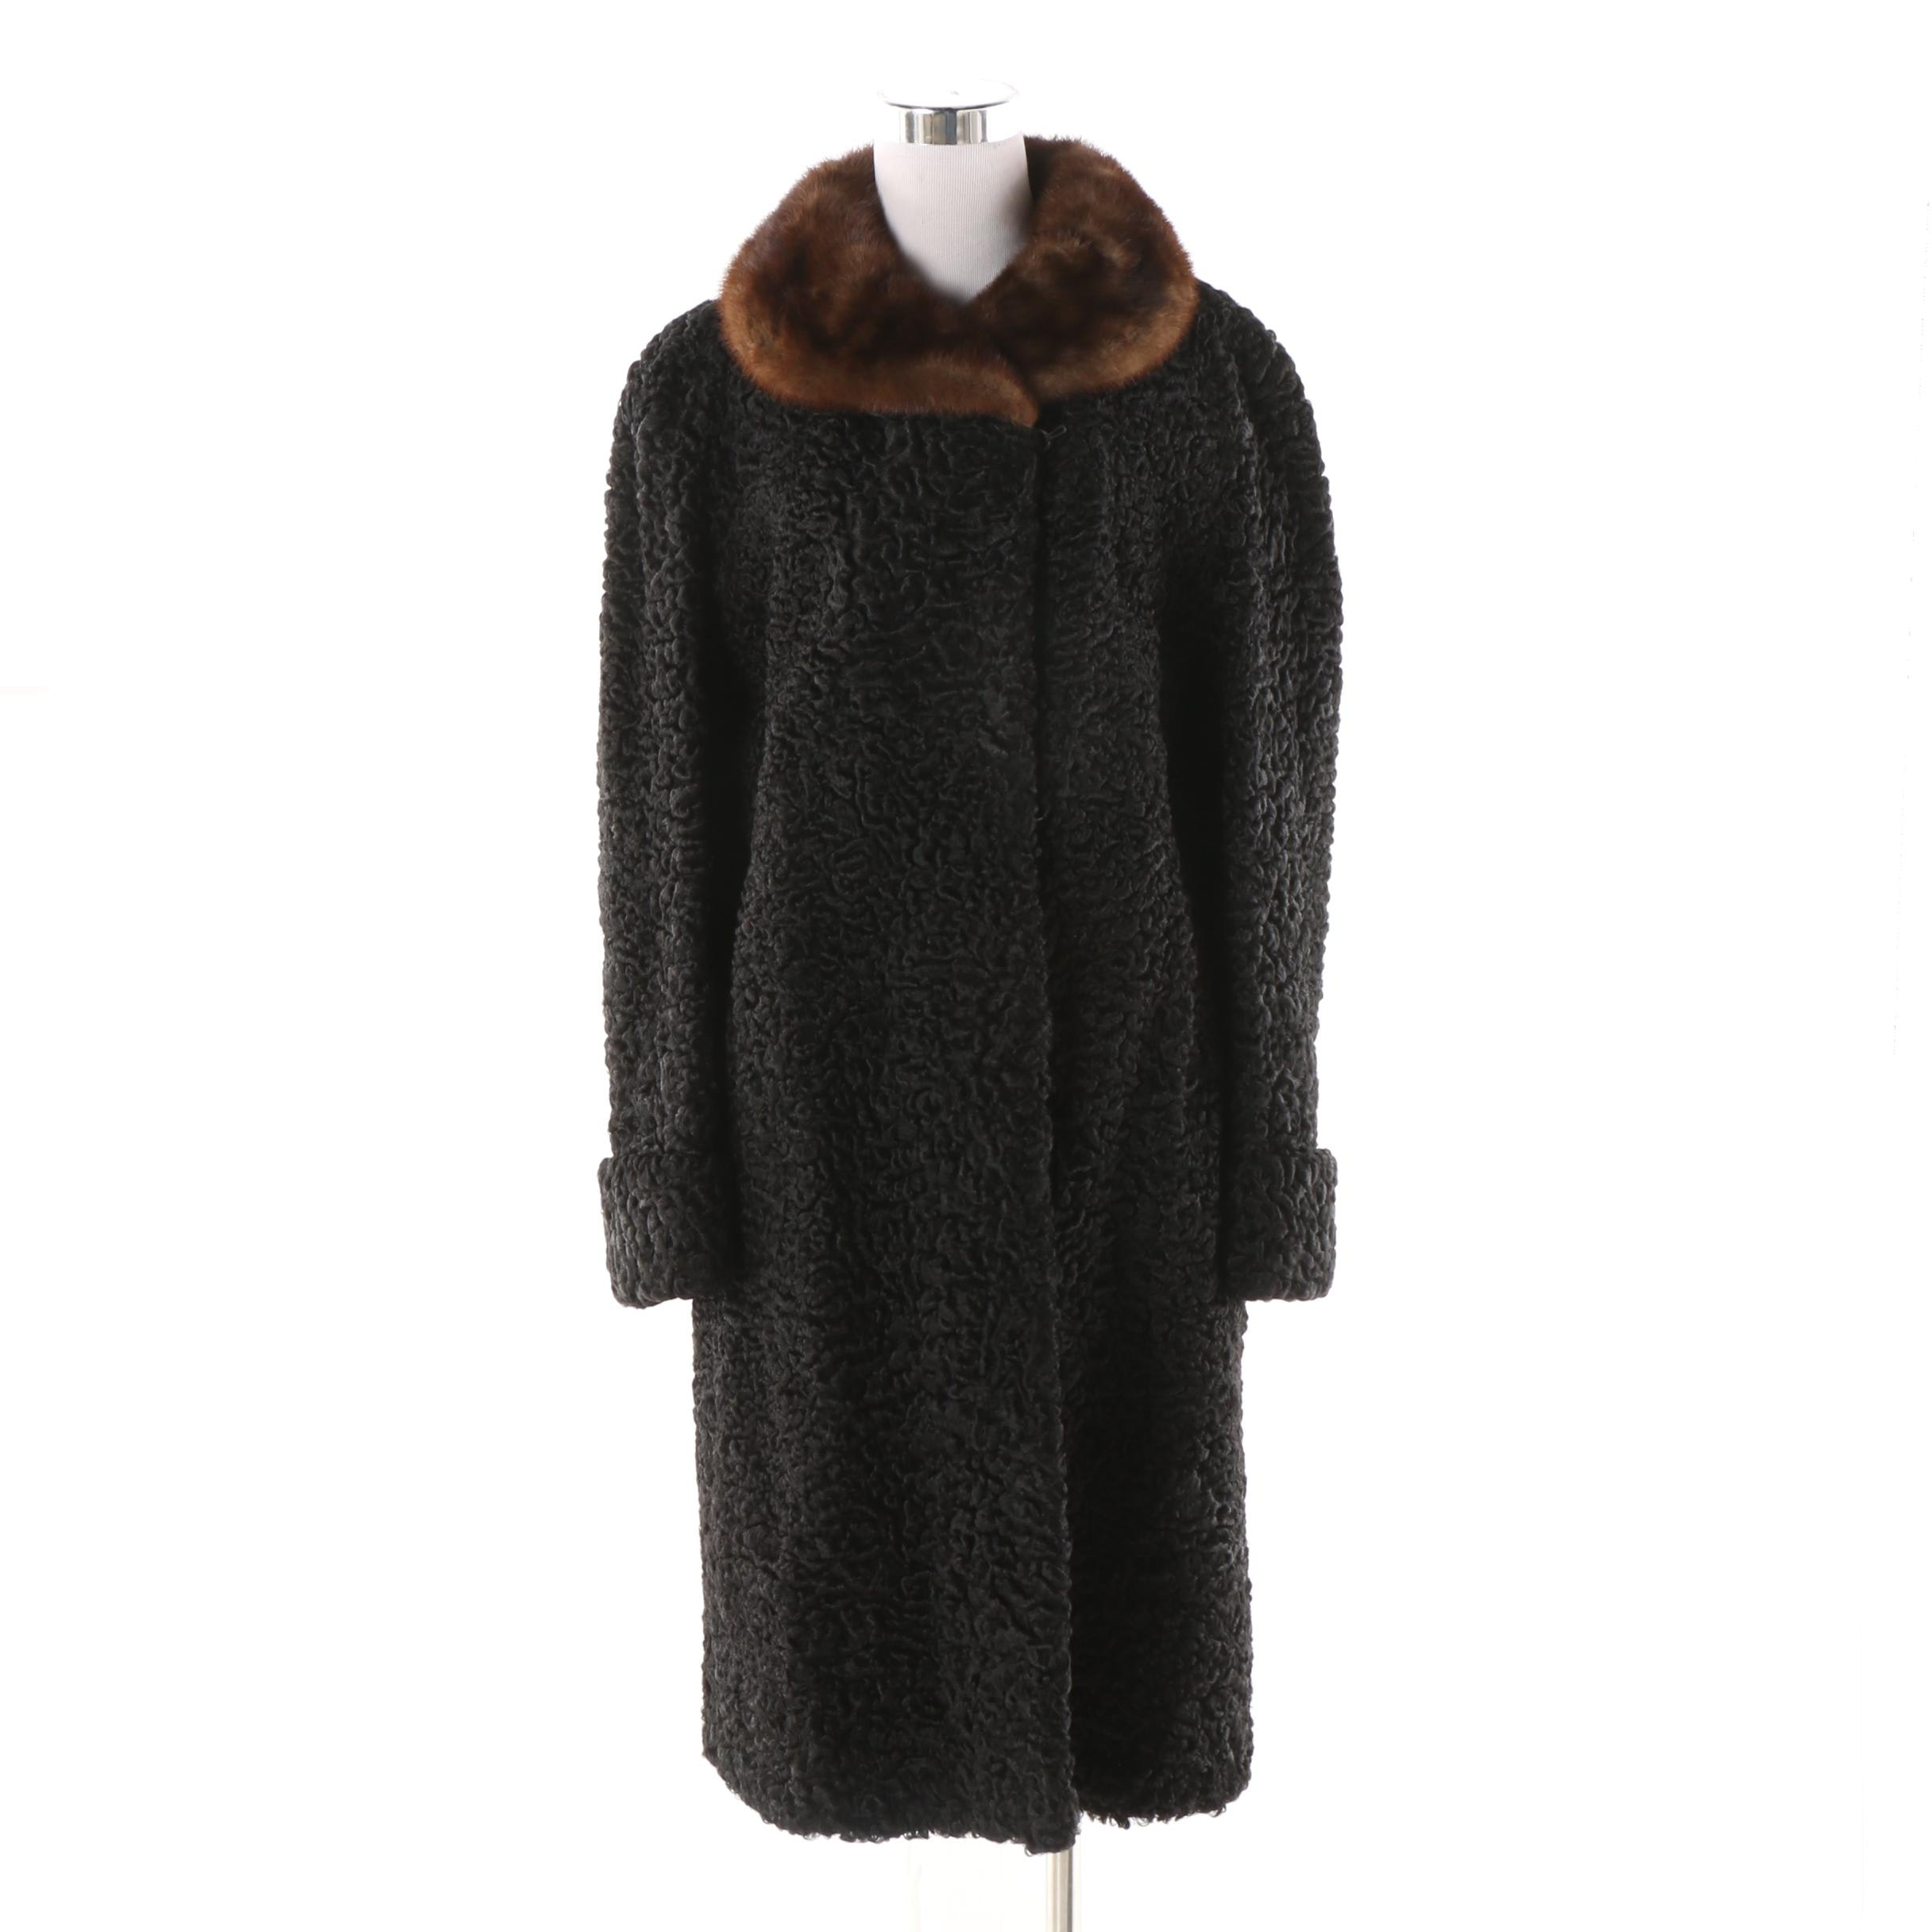 Women's Vintage Persian Lamb Fur Coat with Mink Fur Collar, Made in Canada